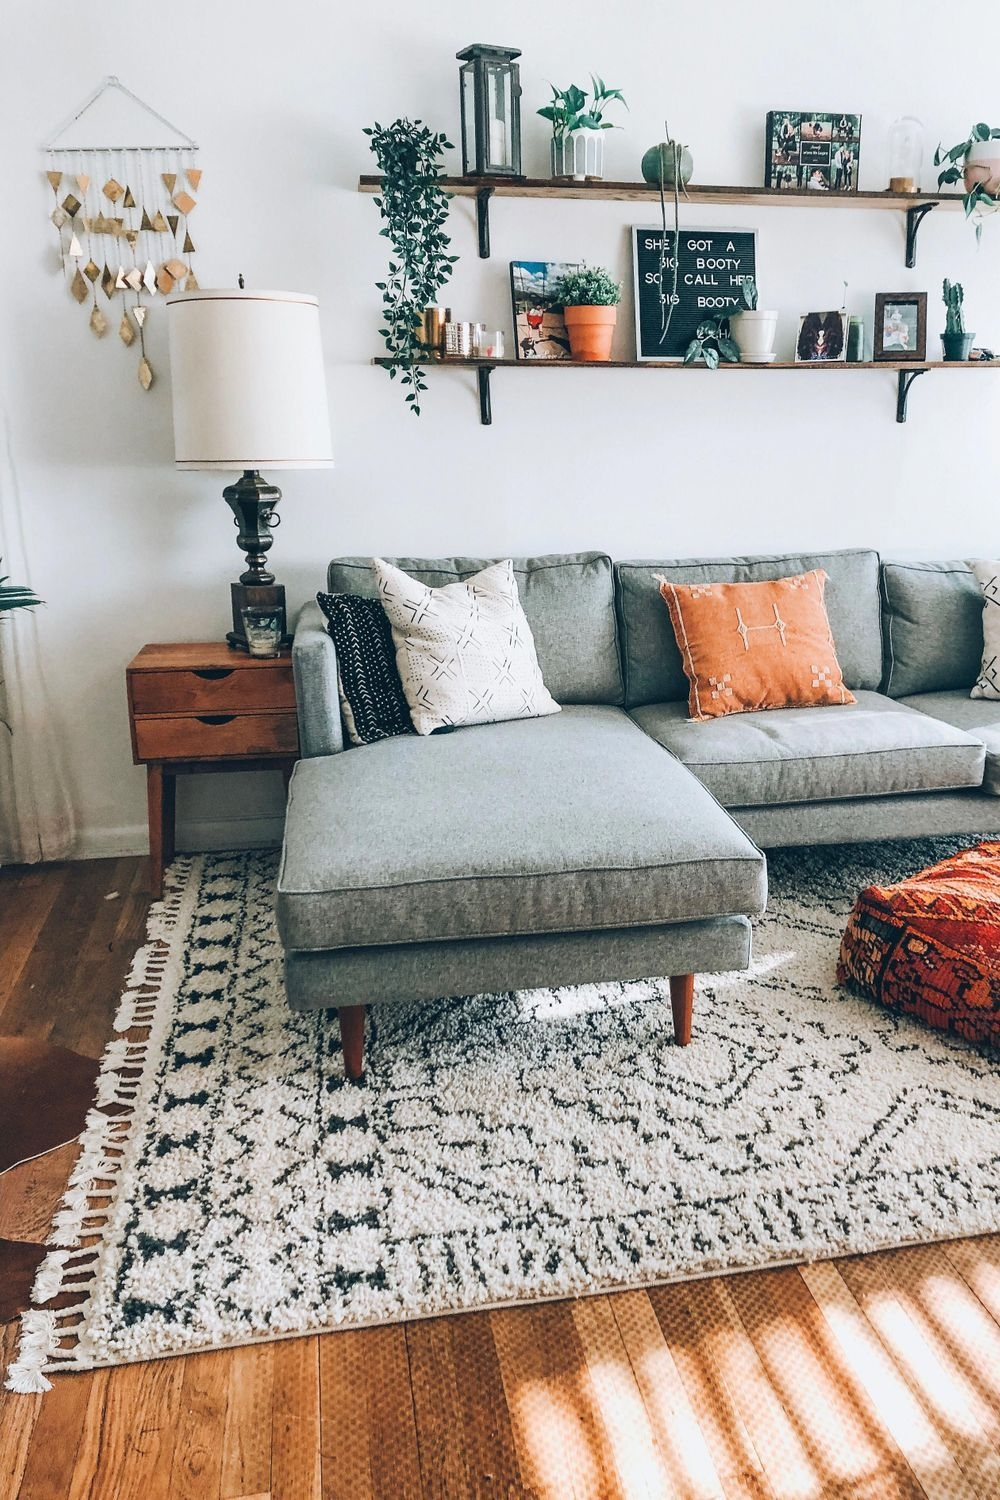 Wondrous Boho Living Room Decor On A Budget Ideas Spaces Living Room Chairs On Magnificent Living Room Apartment House Furniture Couch Interior Design On Boho Living Room Decor On A Budget Ideas Spaces Living Room Chairs